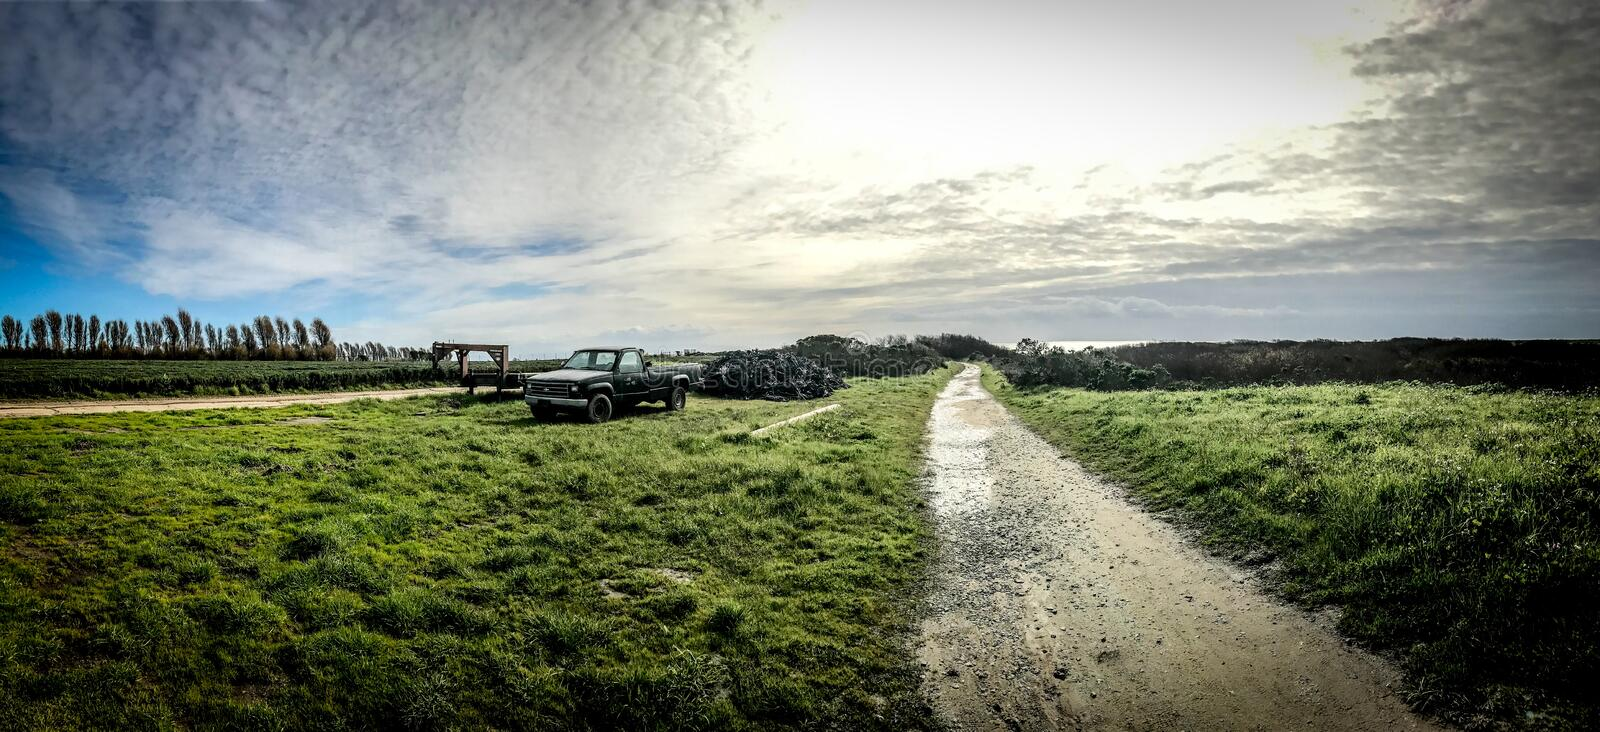 Panoramic shot of a green field with a narrow road in the middle and pickup truck parked on the side royalty free stock image